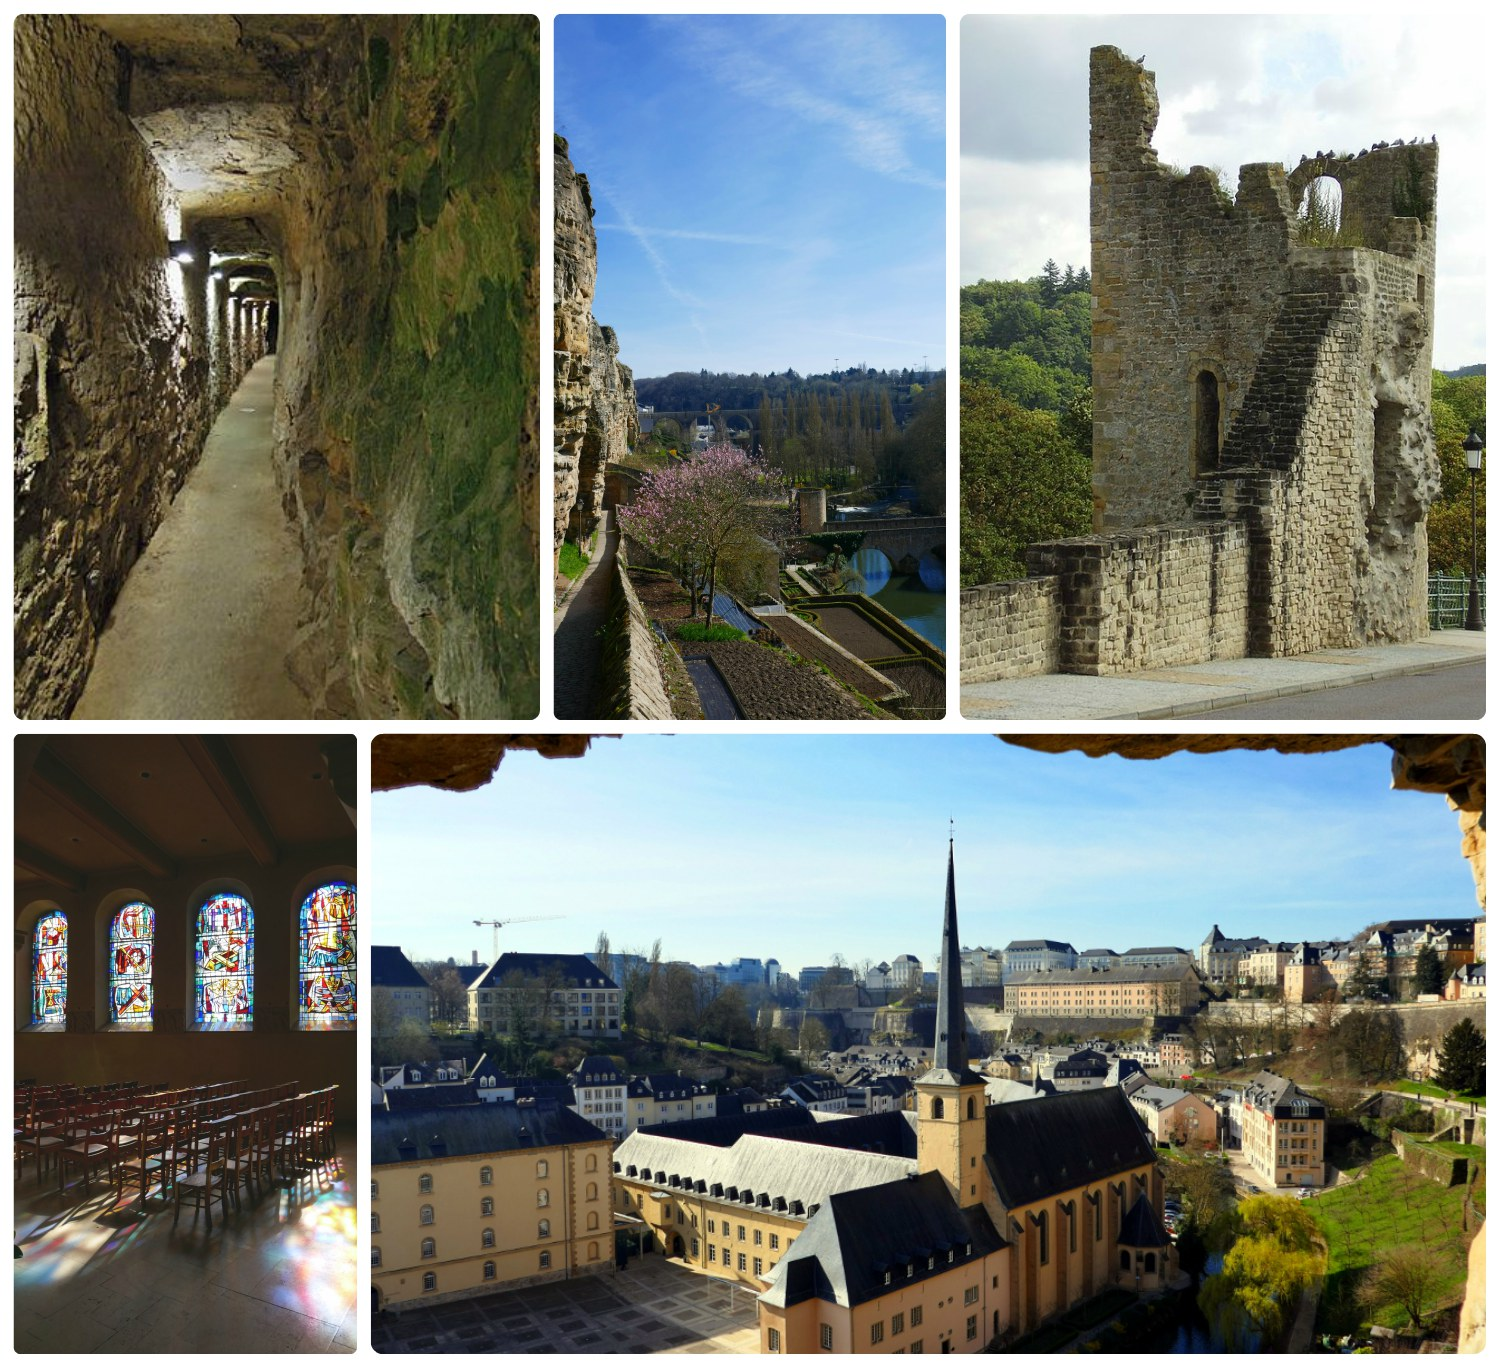 Luxembourg City, Luxembourg. Clockwise (from the top left): Inside Casemates du Bock, Casemates du Bock and view of the Alzette River, Dent Creuse, inside St. Michael's Church, view from Casemates du Bock.